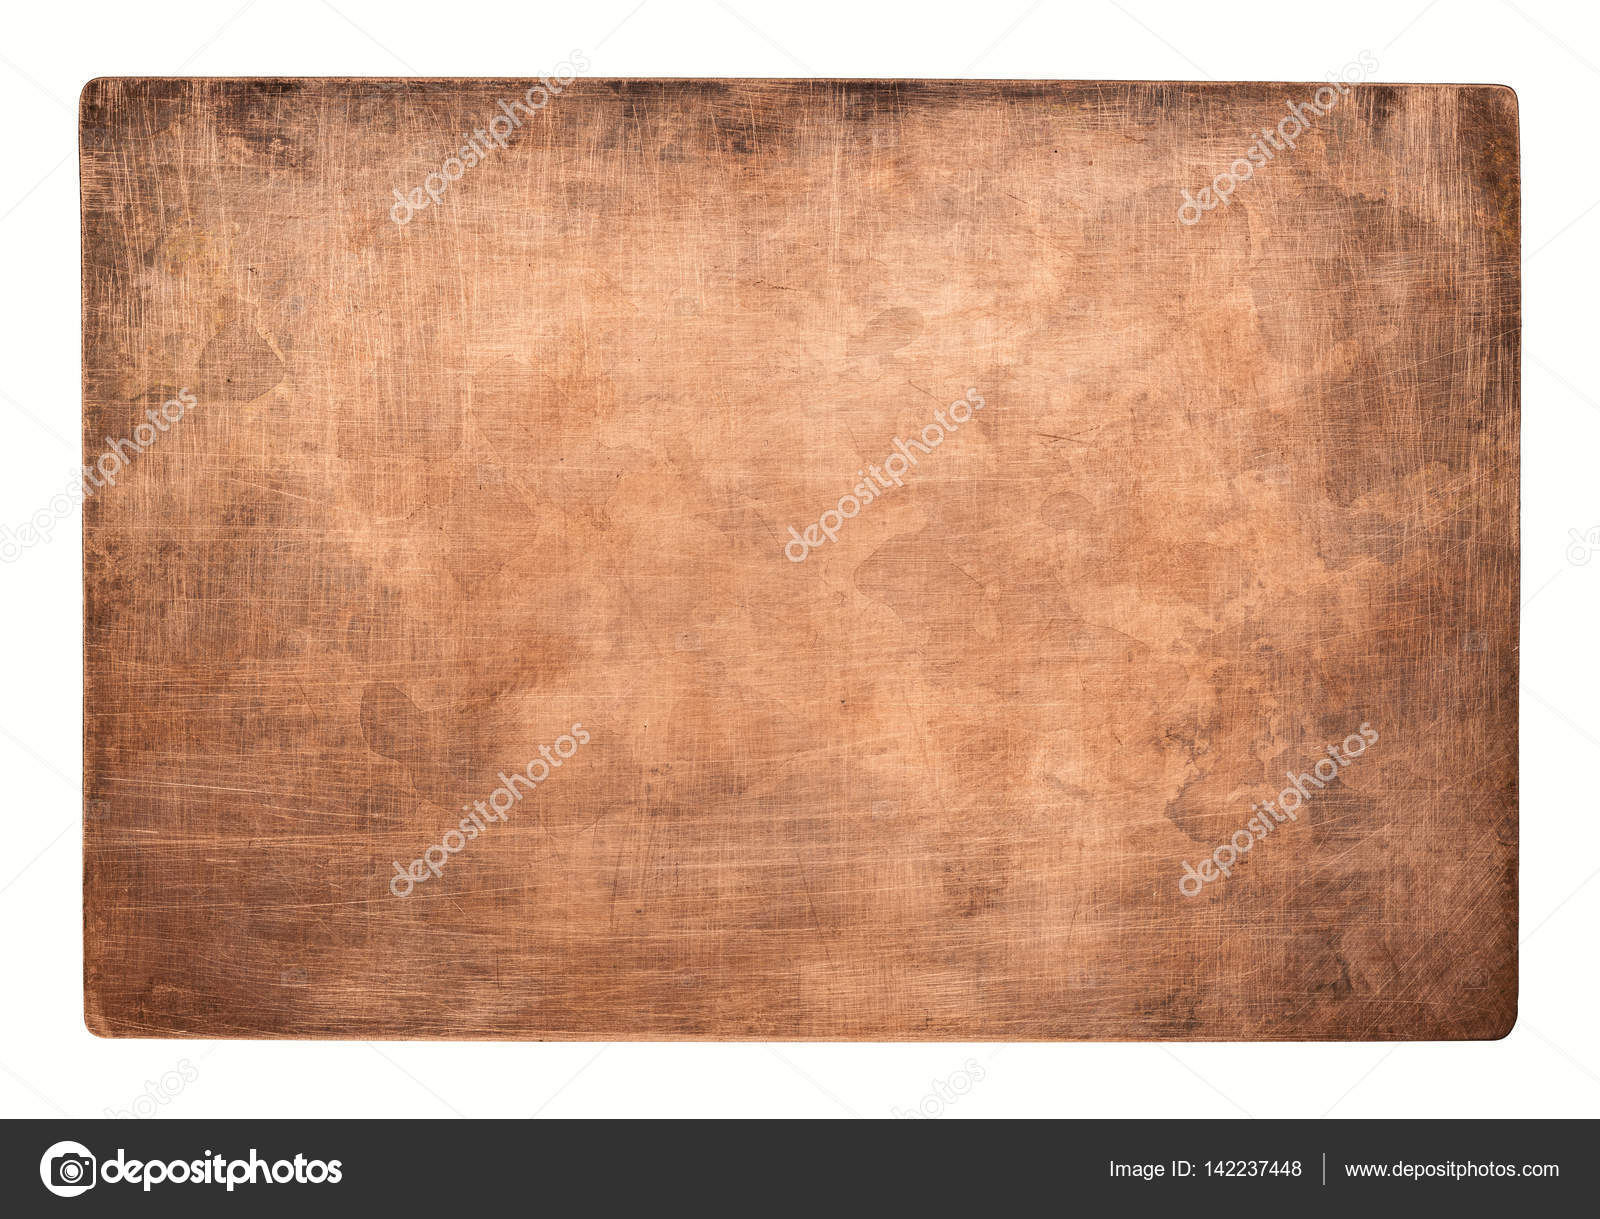 old copper texture images galleries with a bite. Black Bedroom Furniture Sets. Home Design Ideas